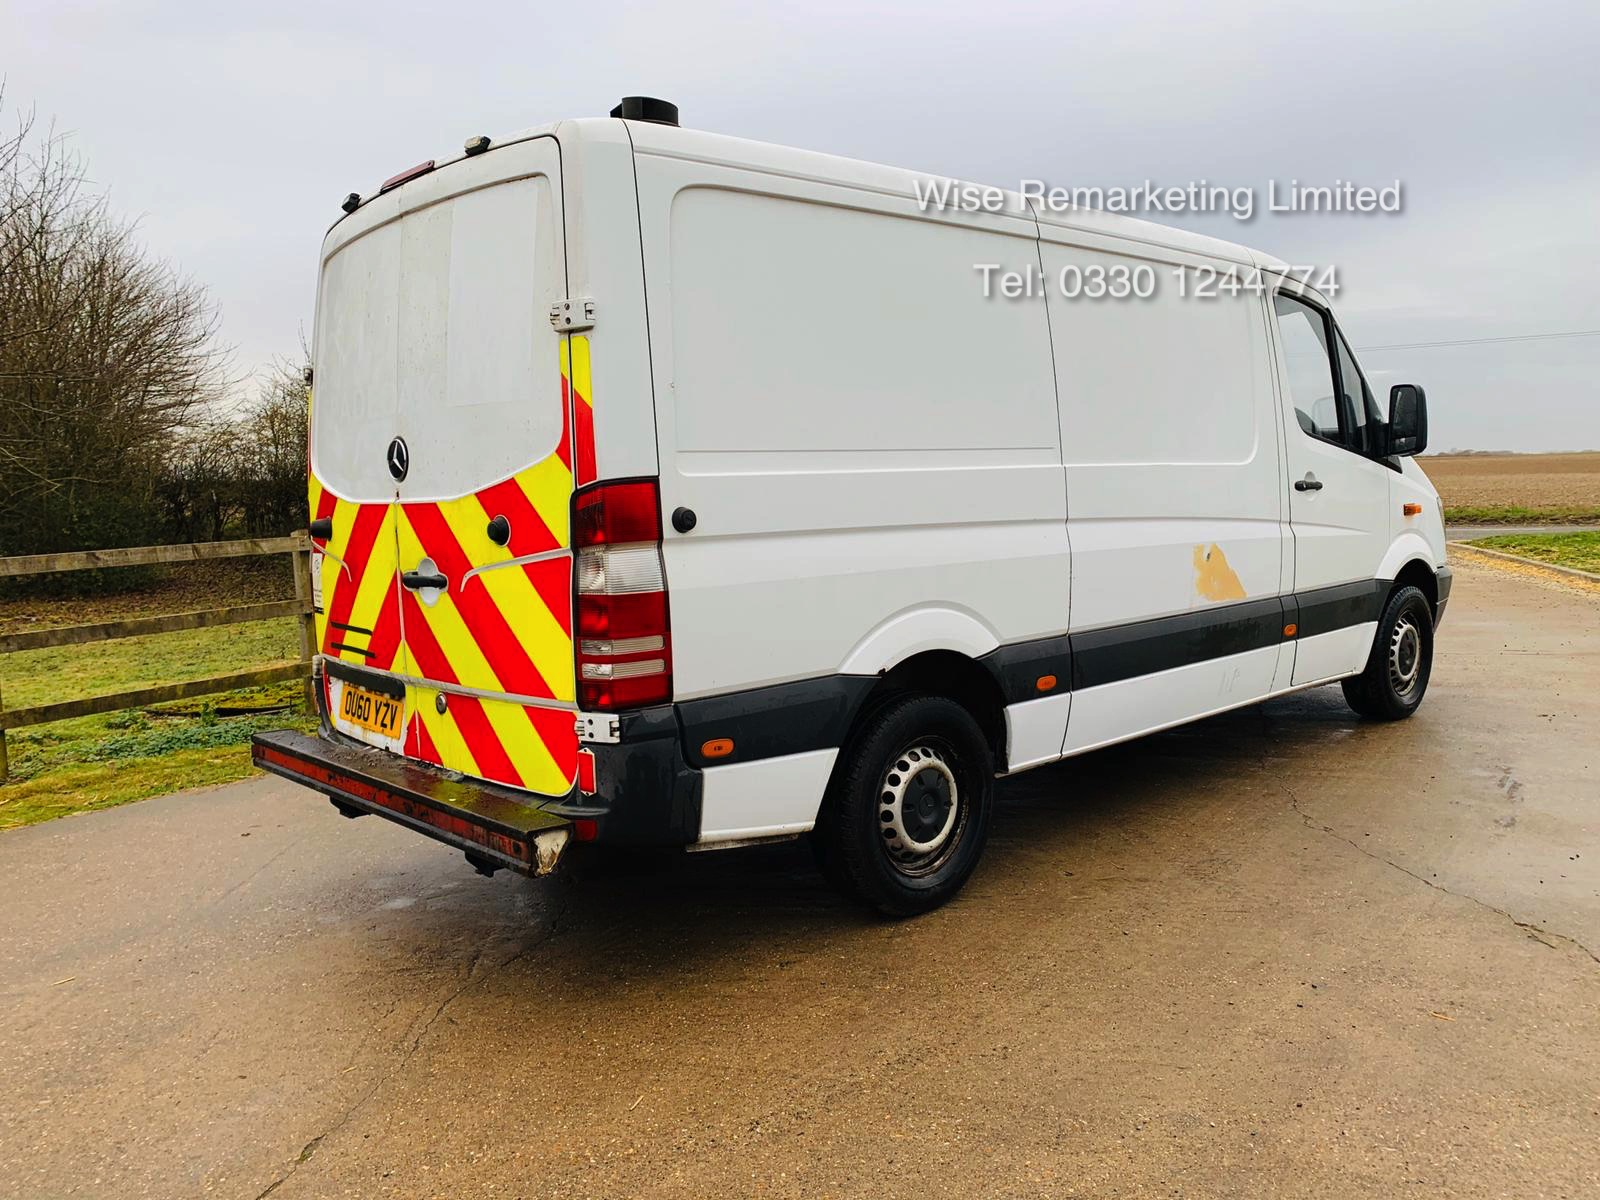 Lot 42 - Mercedes Sprinter 313 2.1 CDI *Automatic Triptronic Gearbox* - 2011 Model - Ply Lined